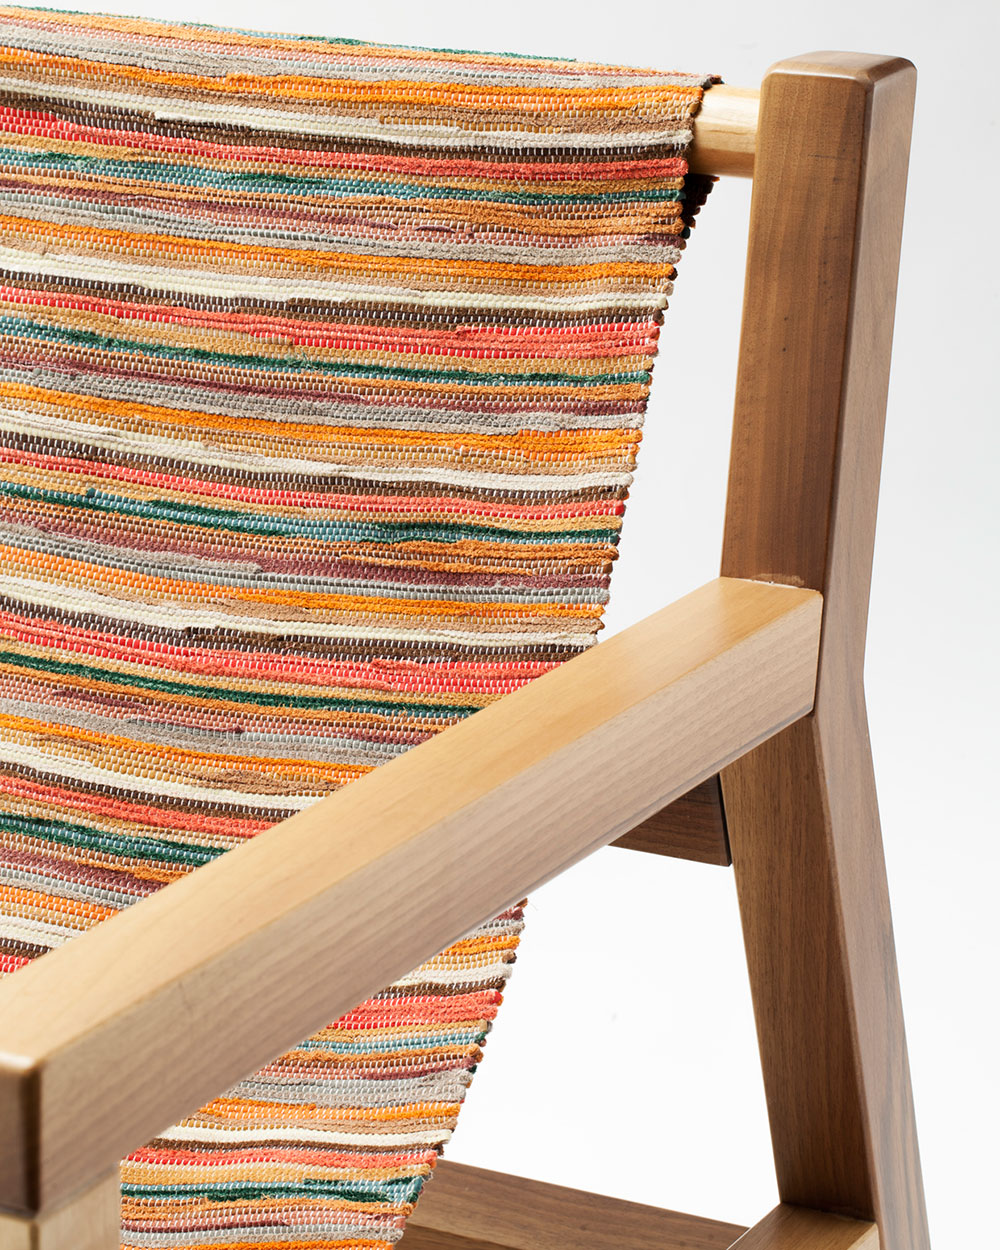 Piateda Armchair by Giorgio Bonaguro | Yellowtrace.